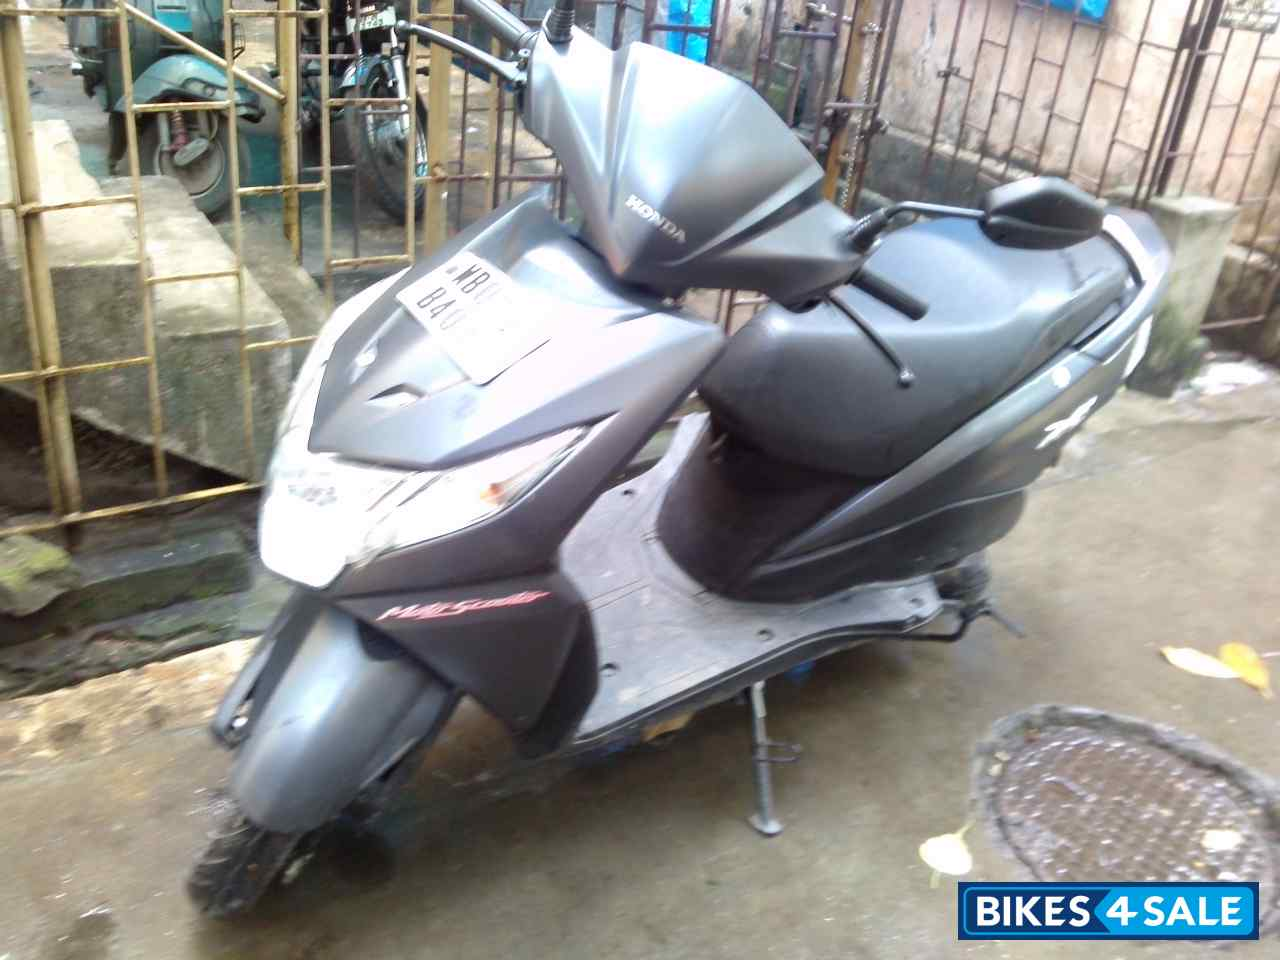 Snap Honda Dio Price I Am Planning To Buy Bikes Bike Stickers Design Second Hand In Kolkata Absolutely New Condition Two